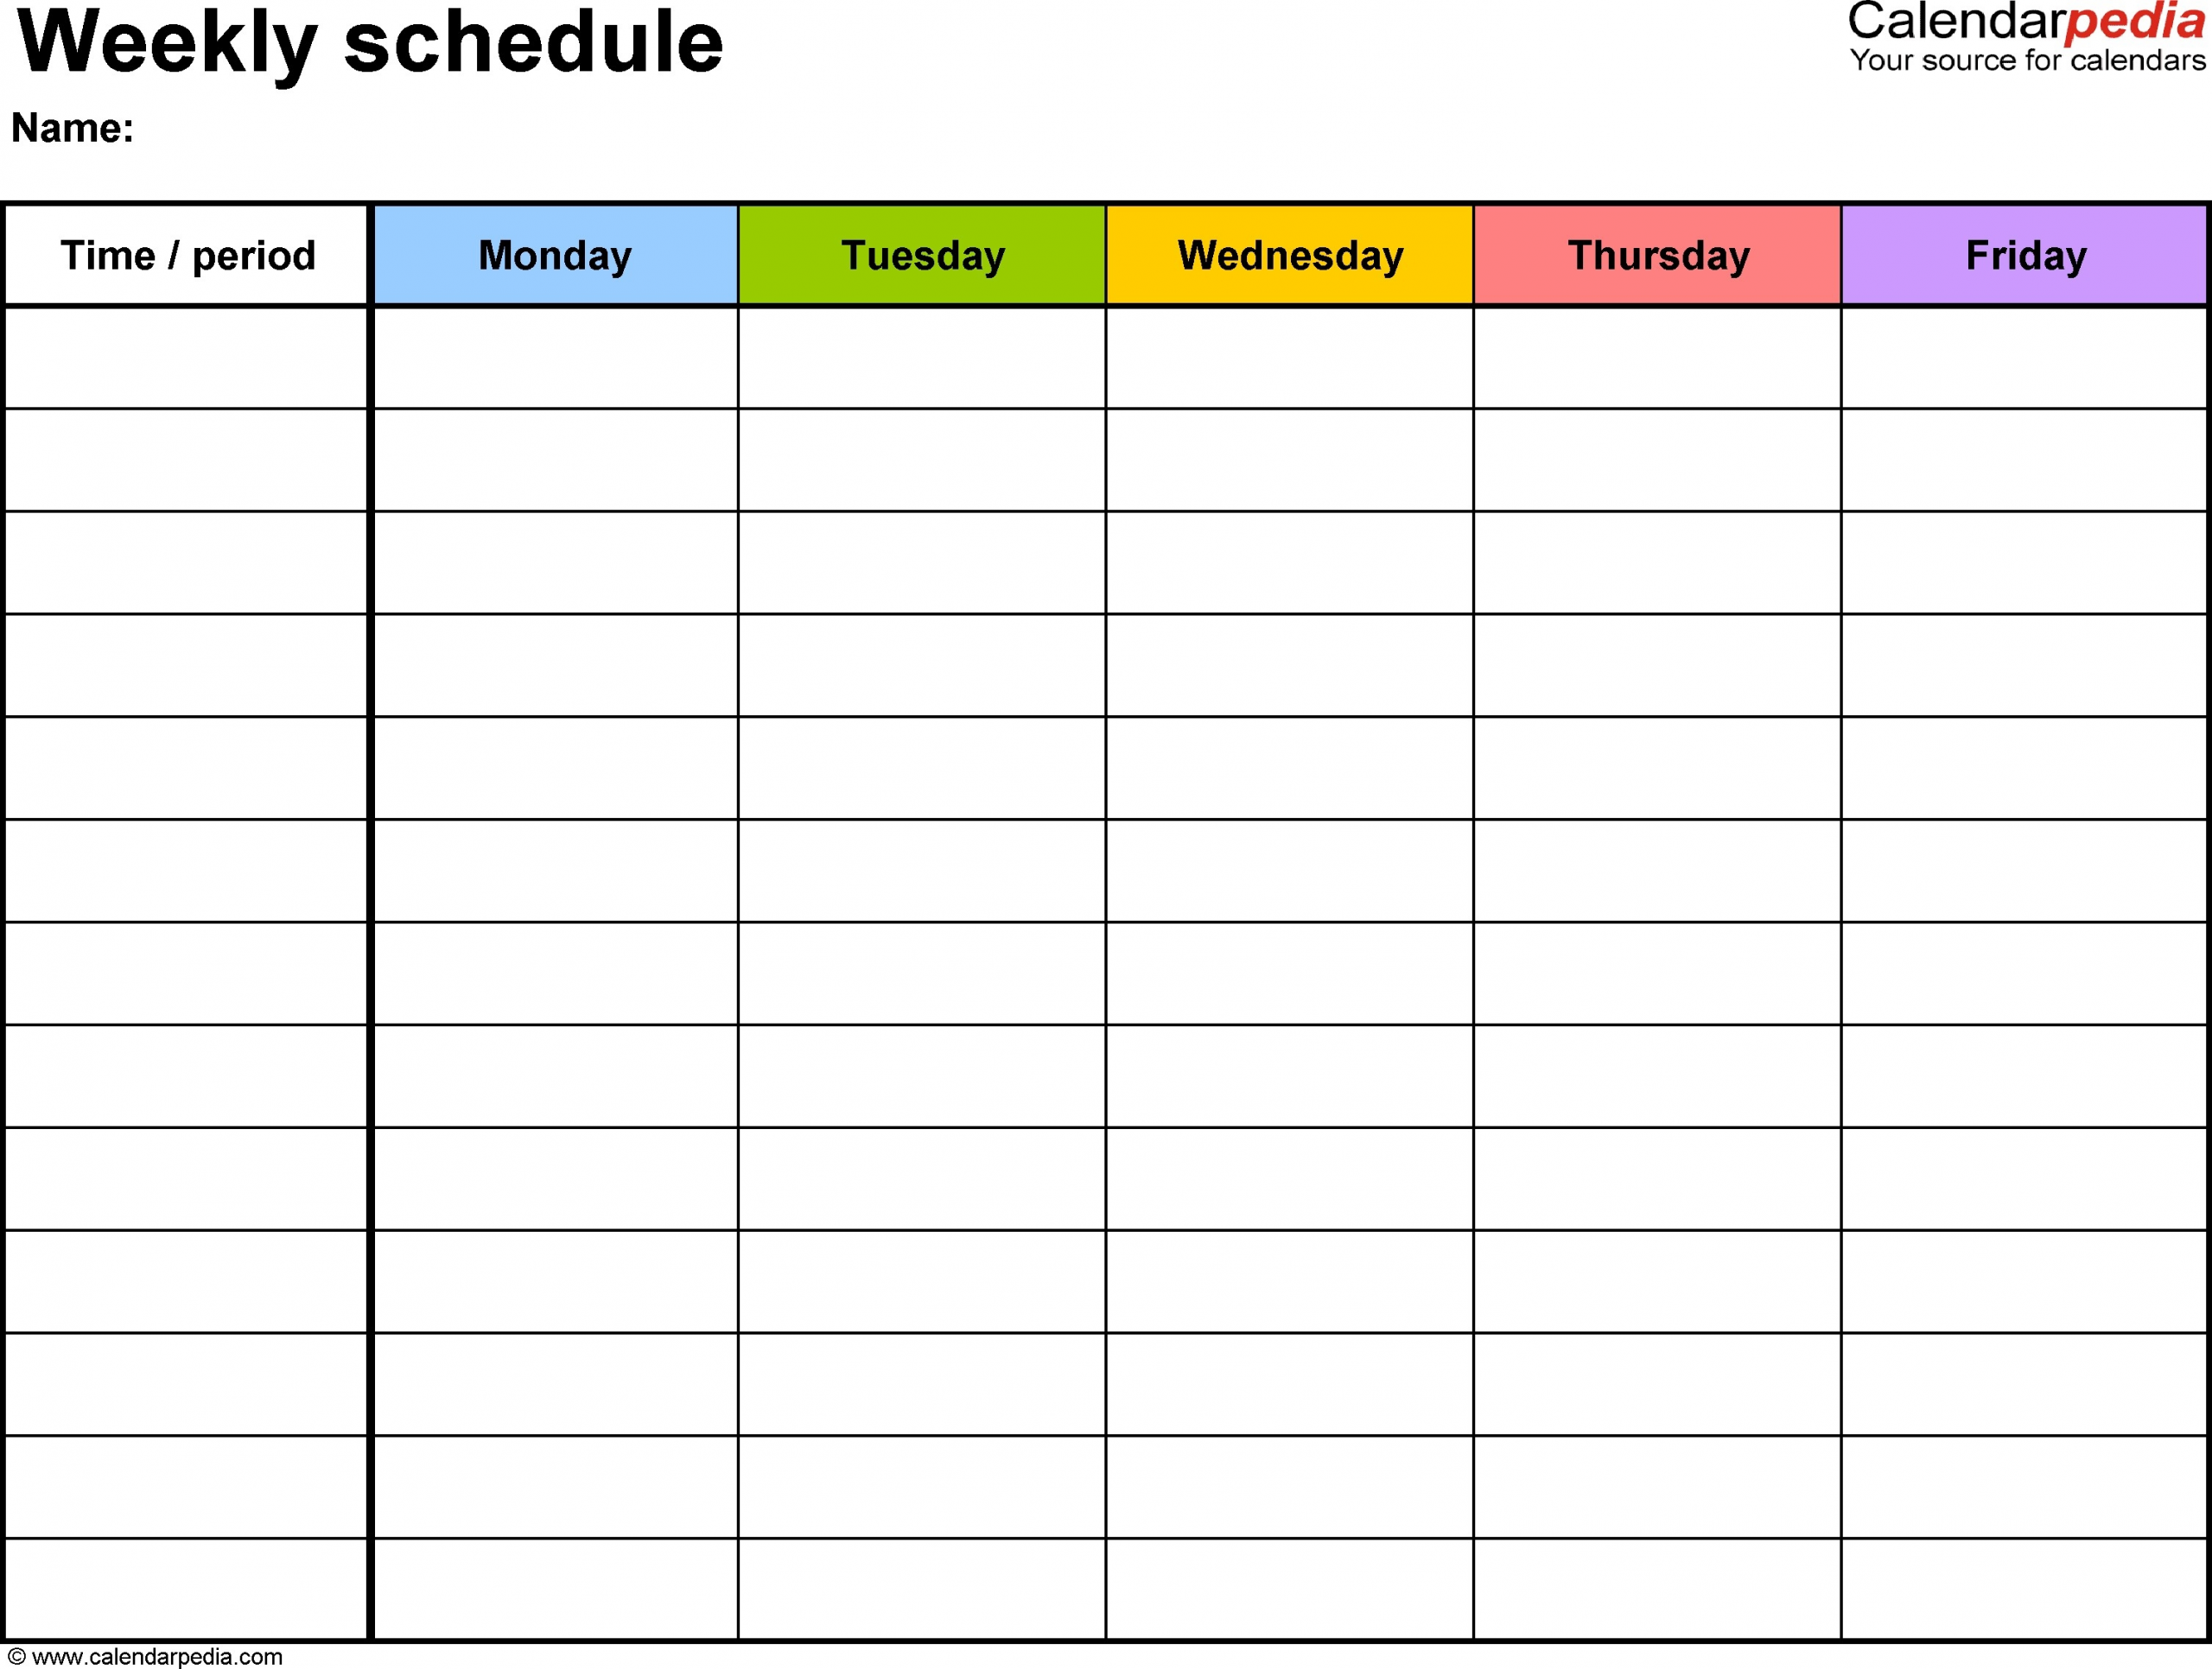 Calendar With Time Slots Template | Example Calendar Printable